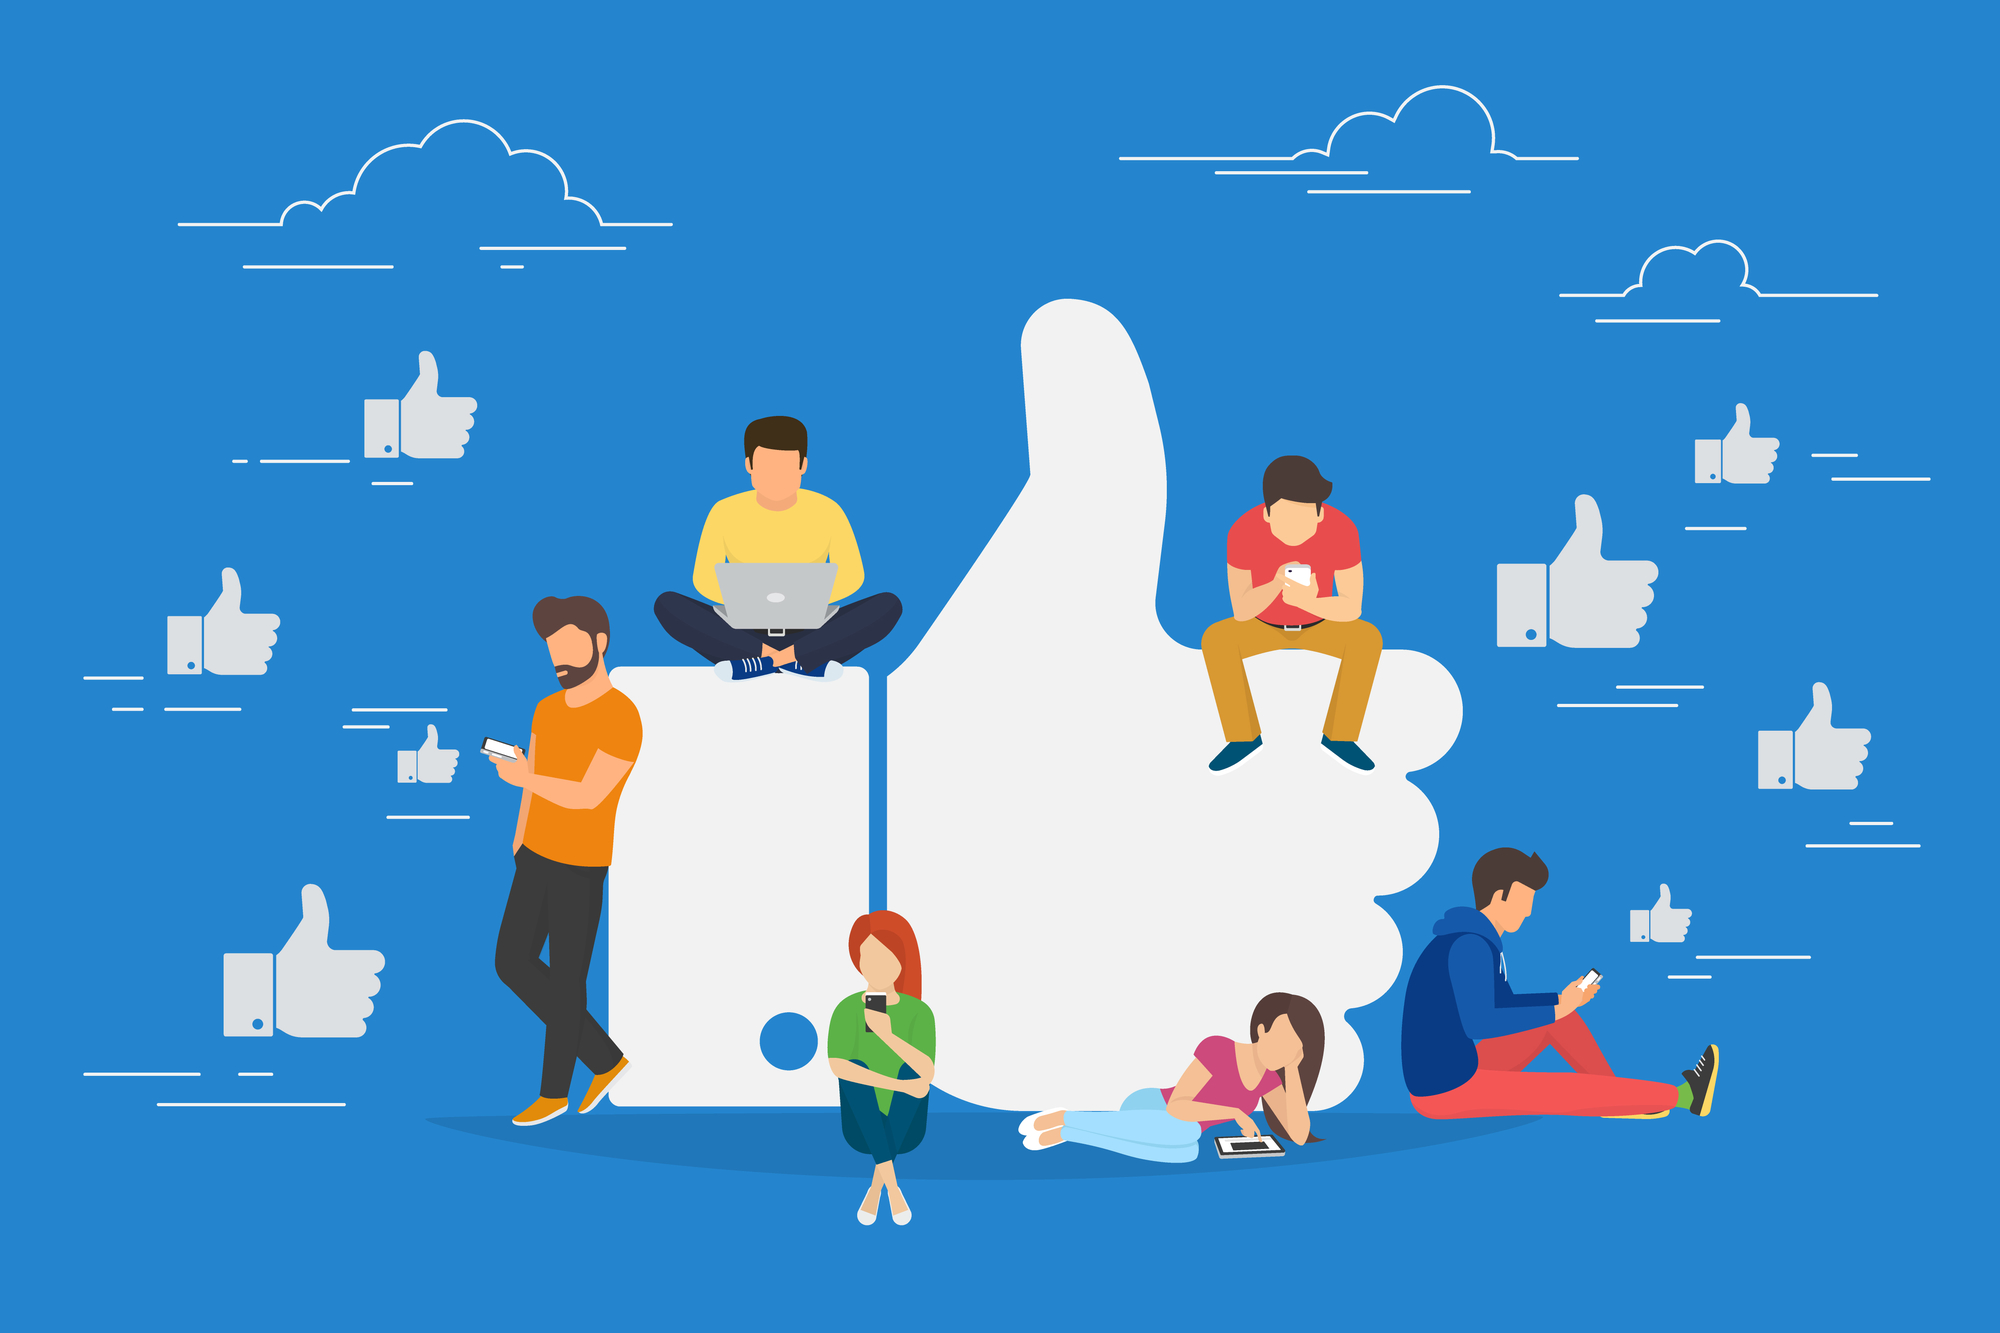 10 savjeta kako treba izgledati objava za Facebook - Red Brick marketing agencija